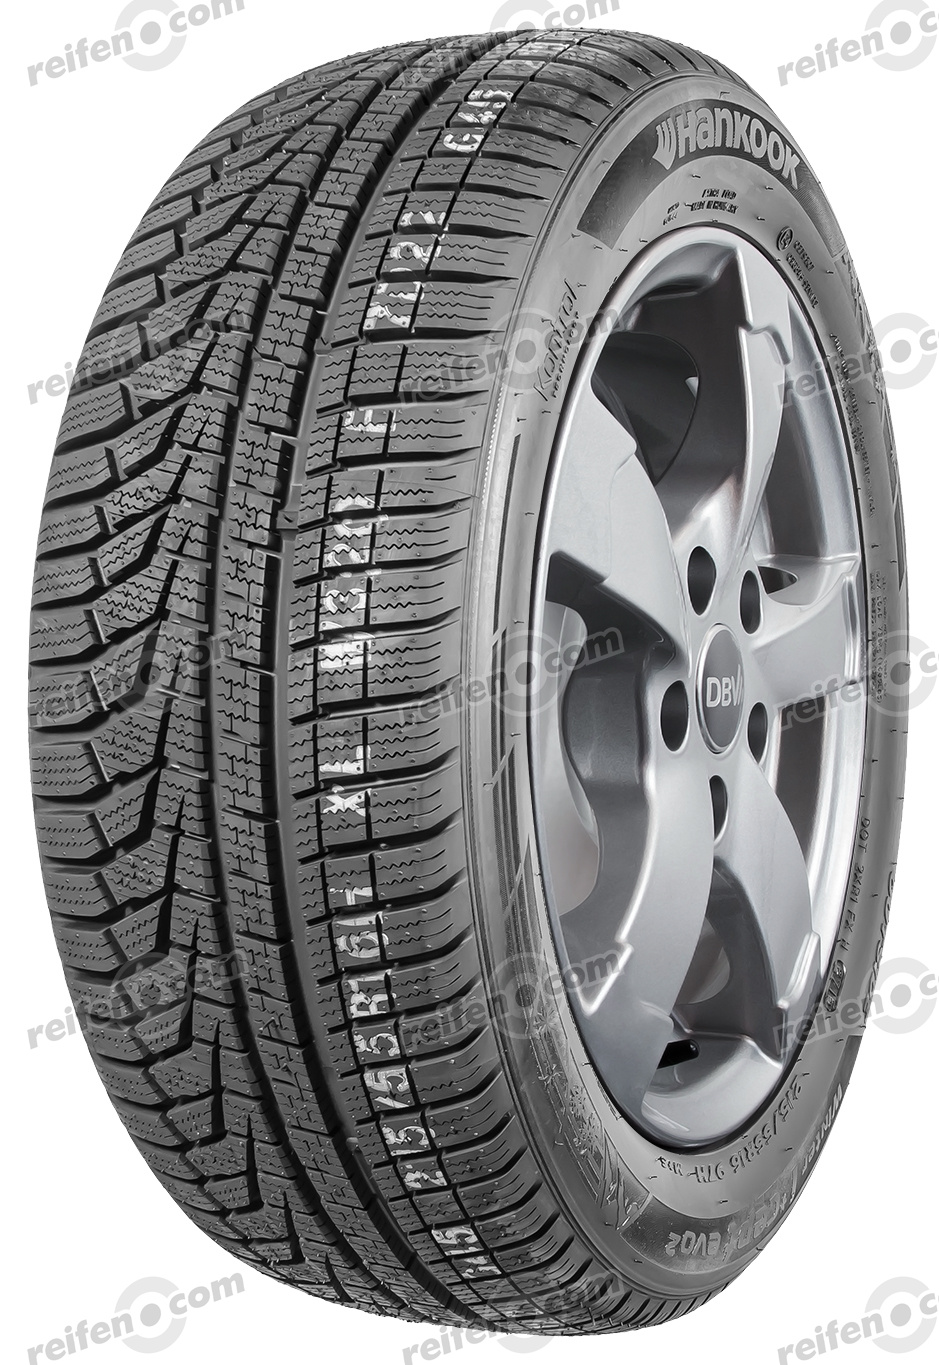 225/40 R18 92V Winter i*cept evo2 W320 XL  Winter i*cept evo2 W320 XL